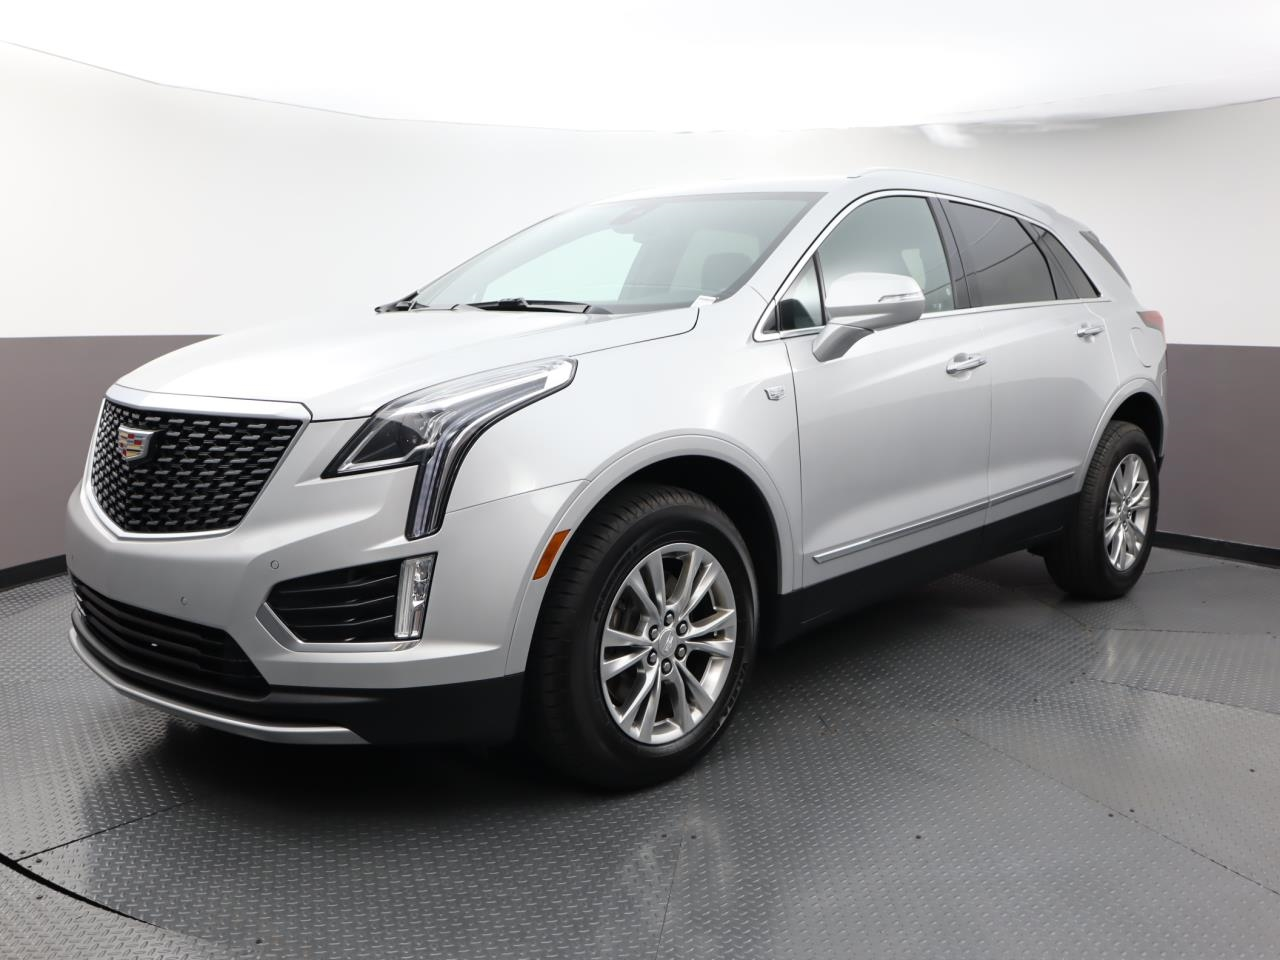 Used CADILLAC XT5 2020 MARGATE PREMIUM LUXURY FWD